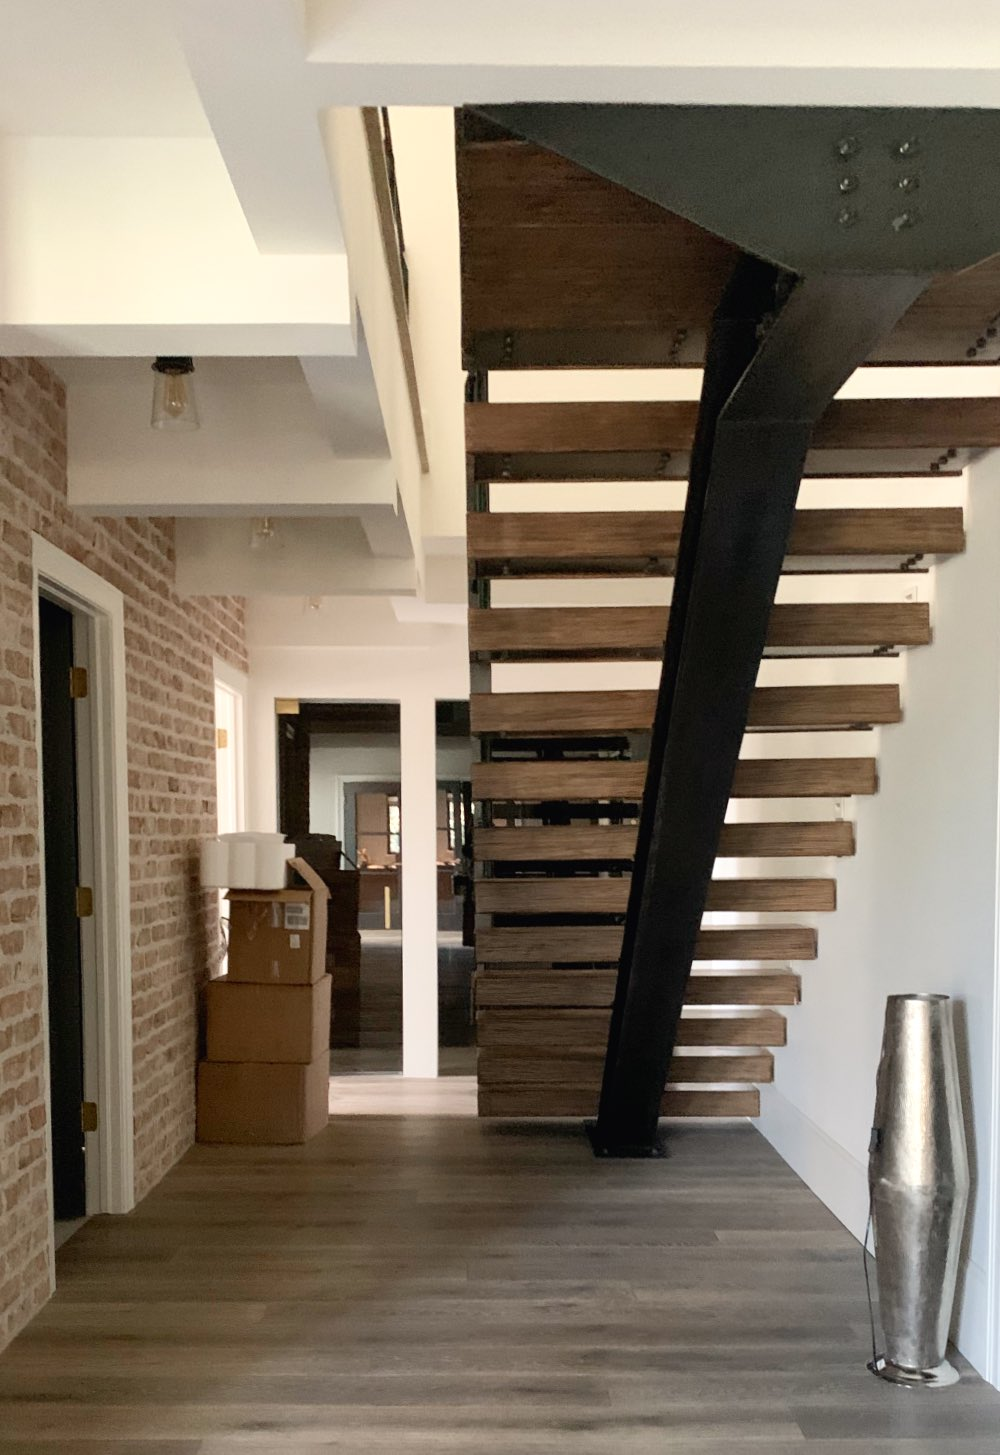 Cloud white walls in basement under stairs